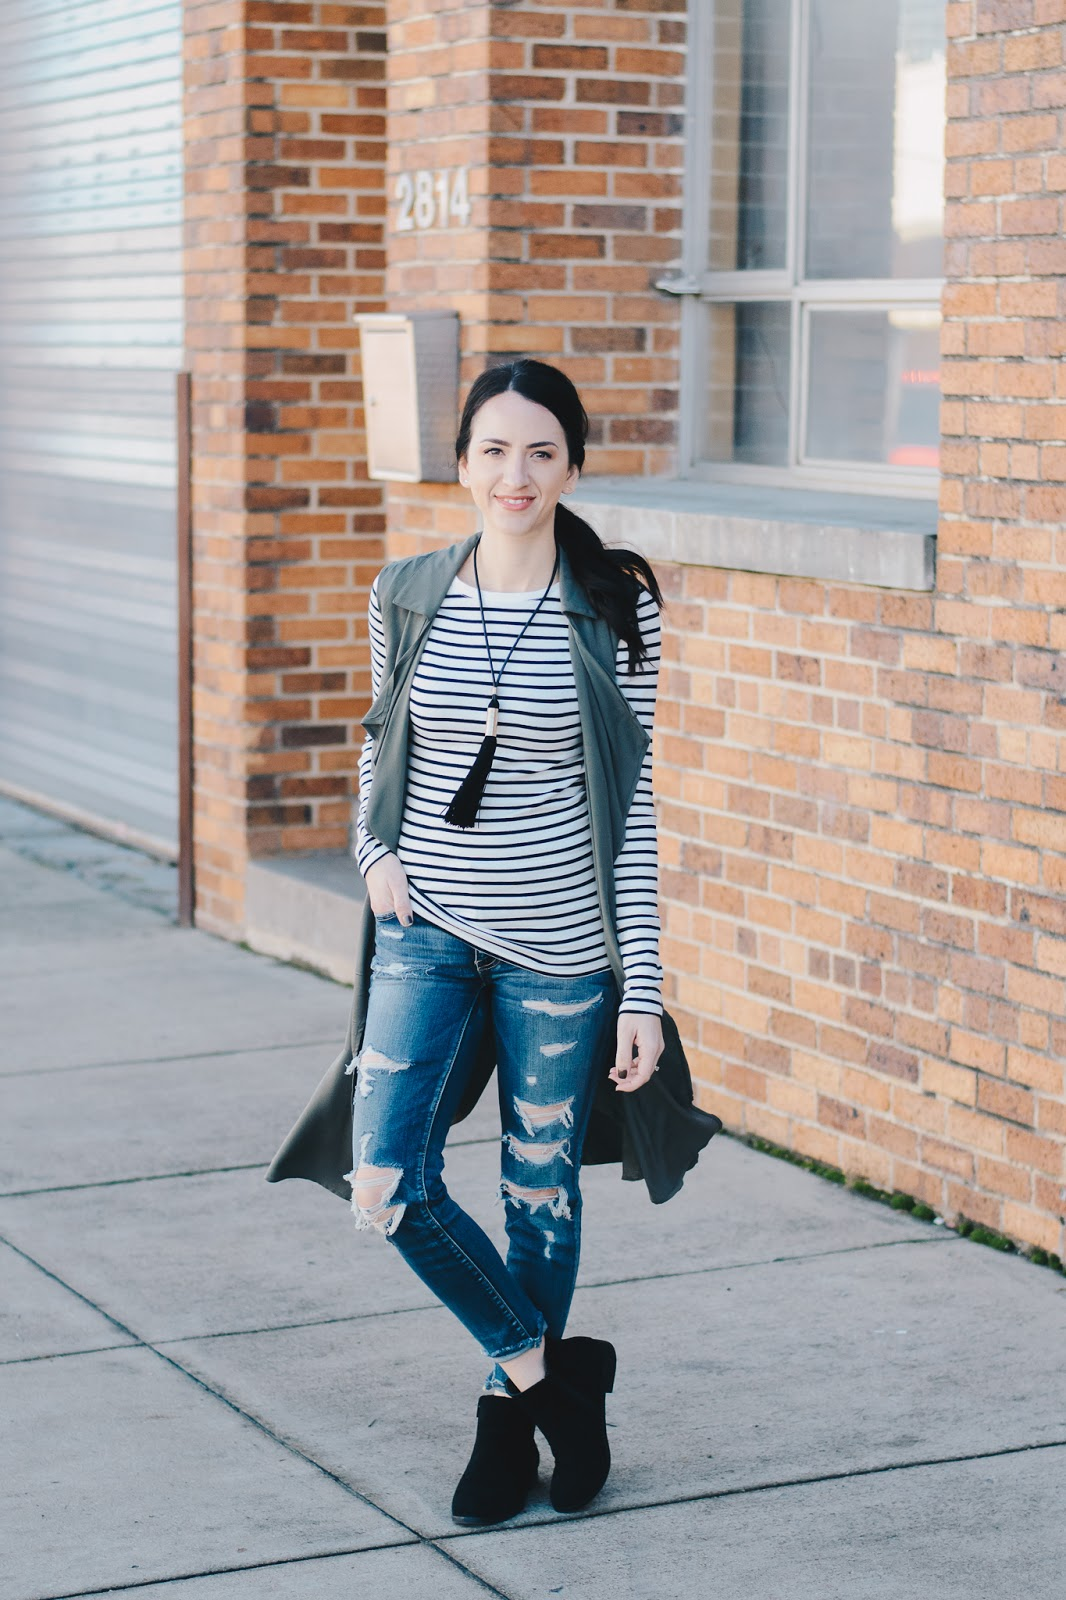 Casual Fall Style in ankle booties, distressed denim and striped basic tee